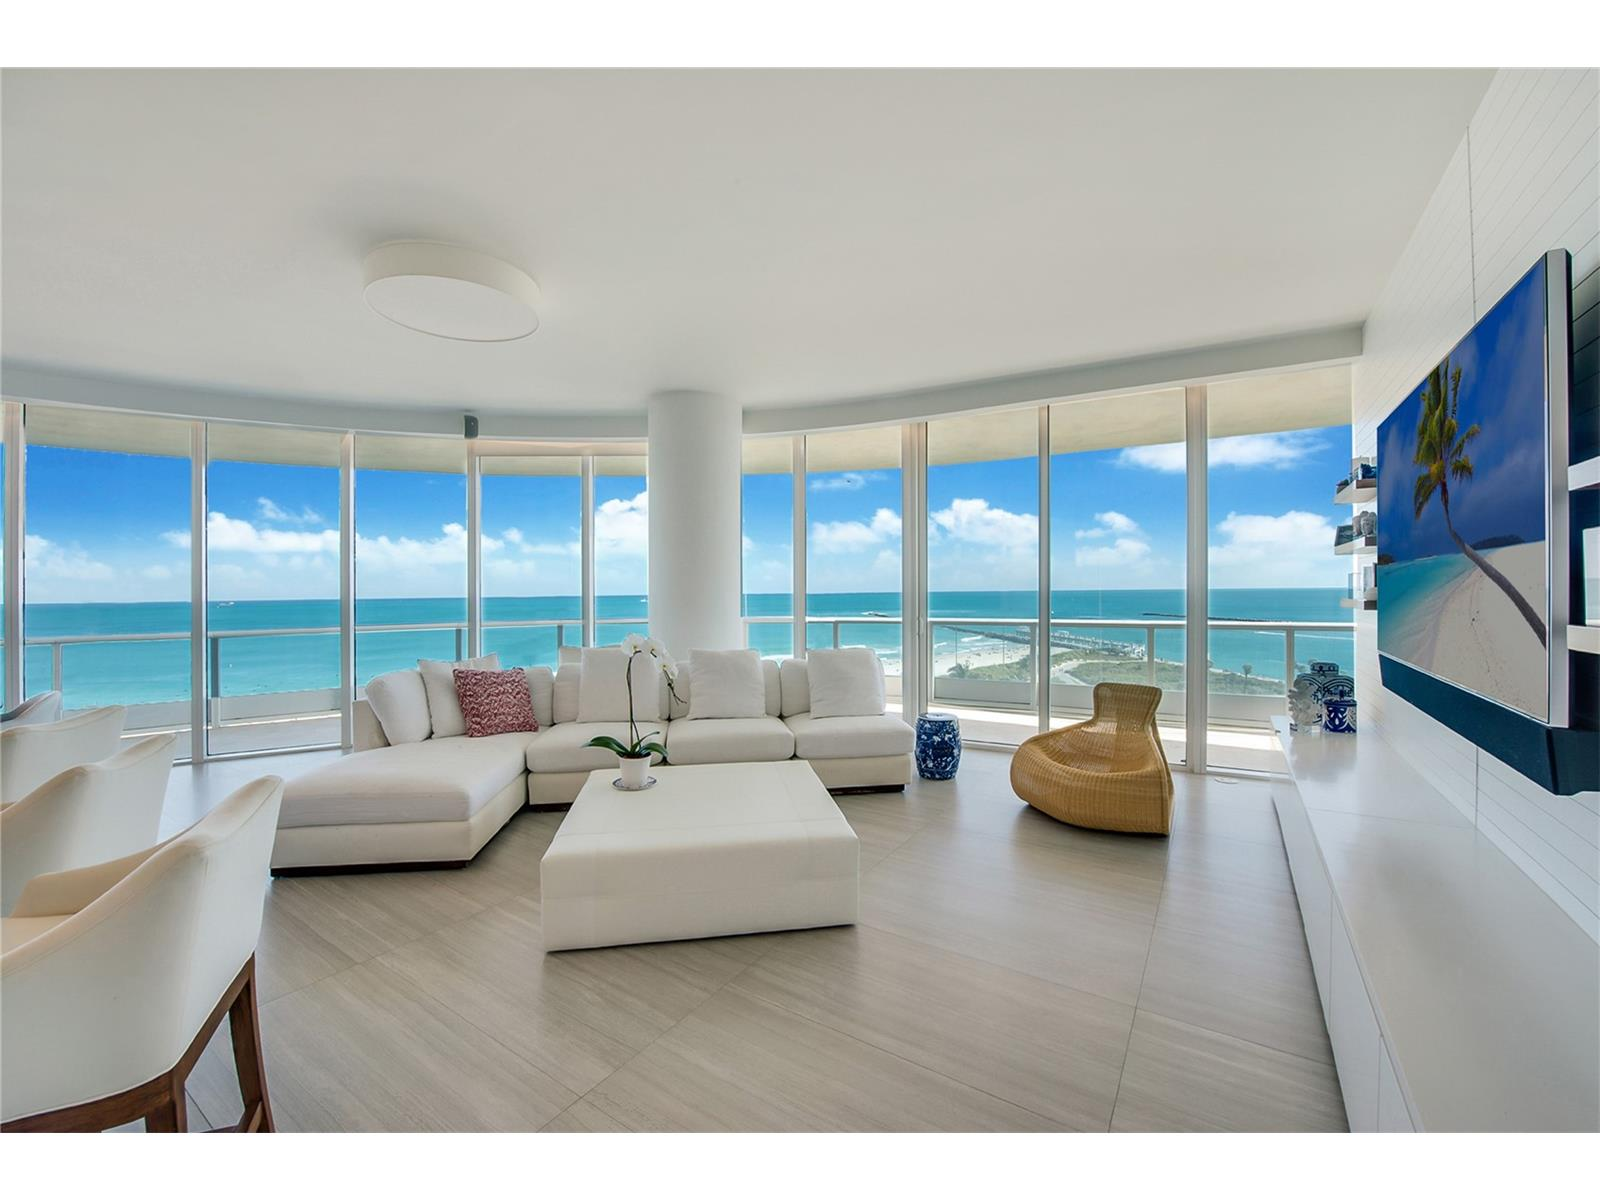 Brazilian Formula 1 driver lists South Beach condo for $8M